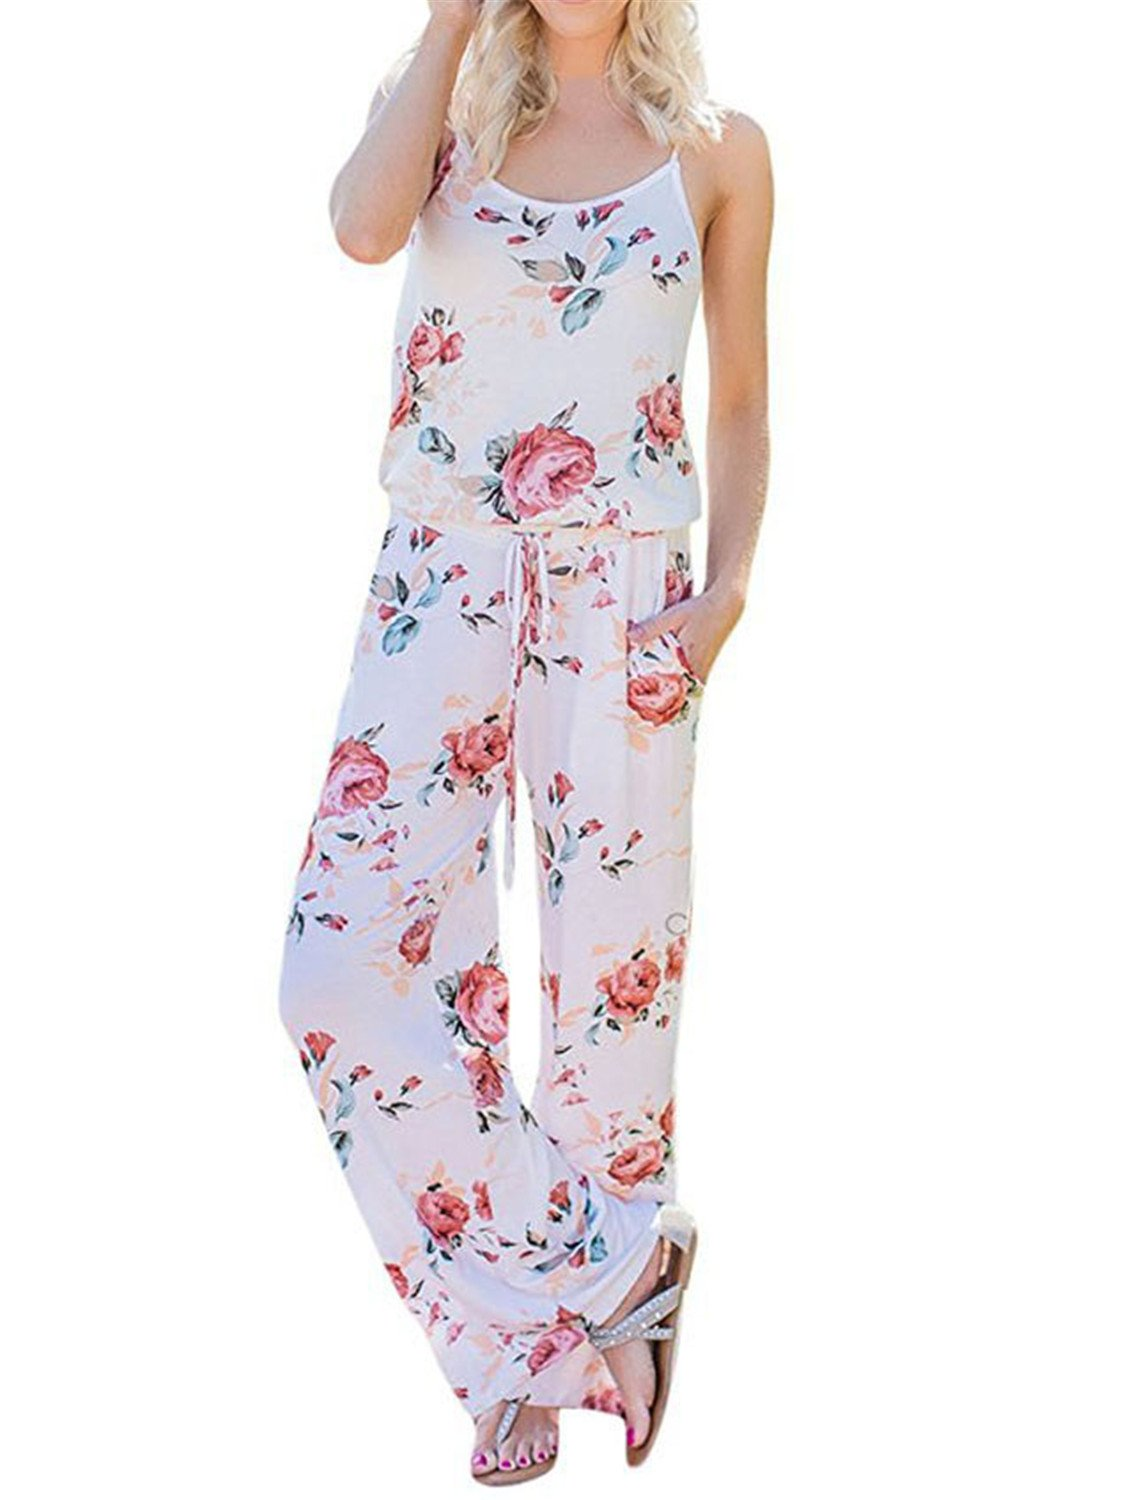 2018 Kawaii Floral Women Jumpsuit Fashion Spaghetti Strap Long Playsuits Casual by Rainlife jumpsuits